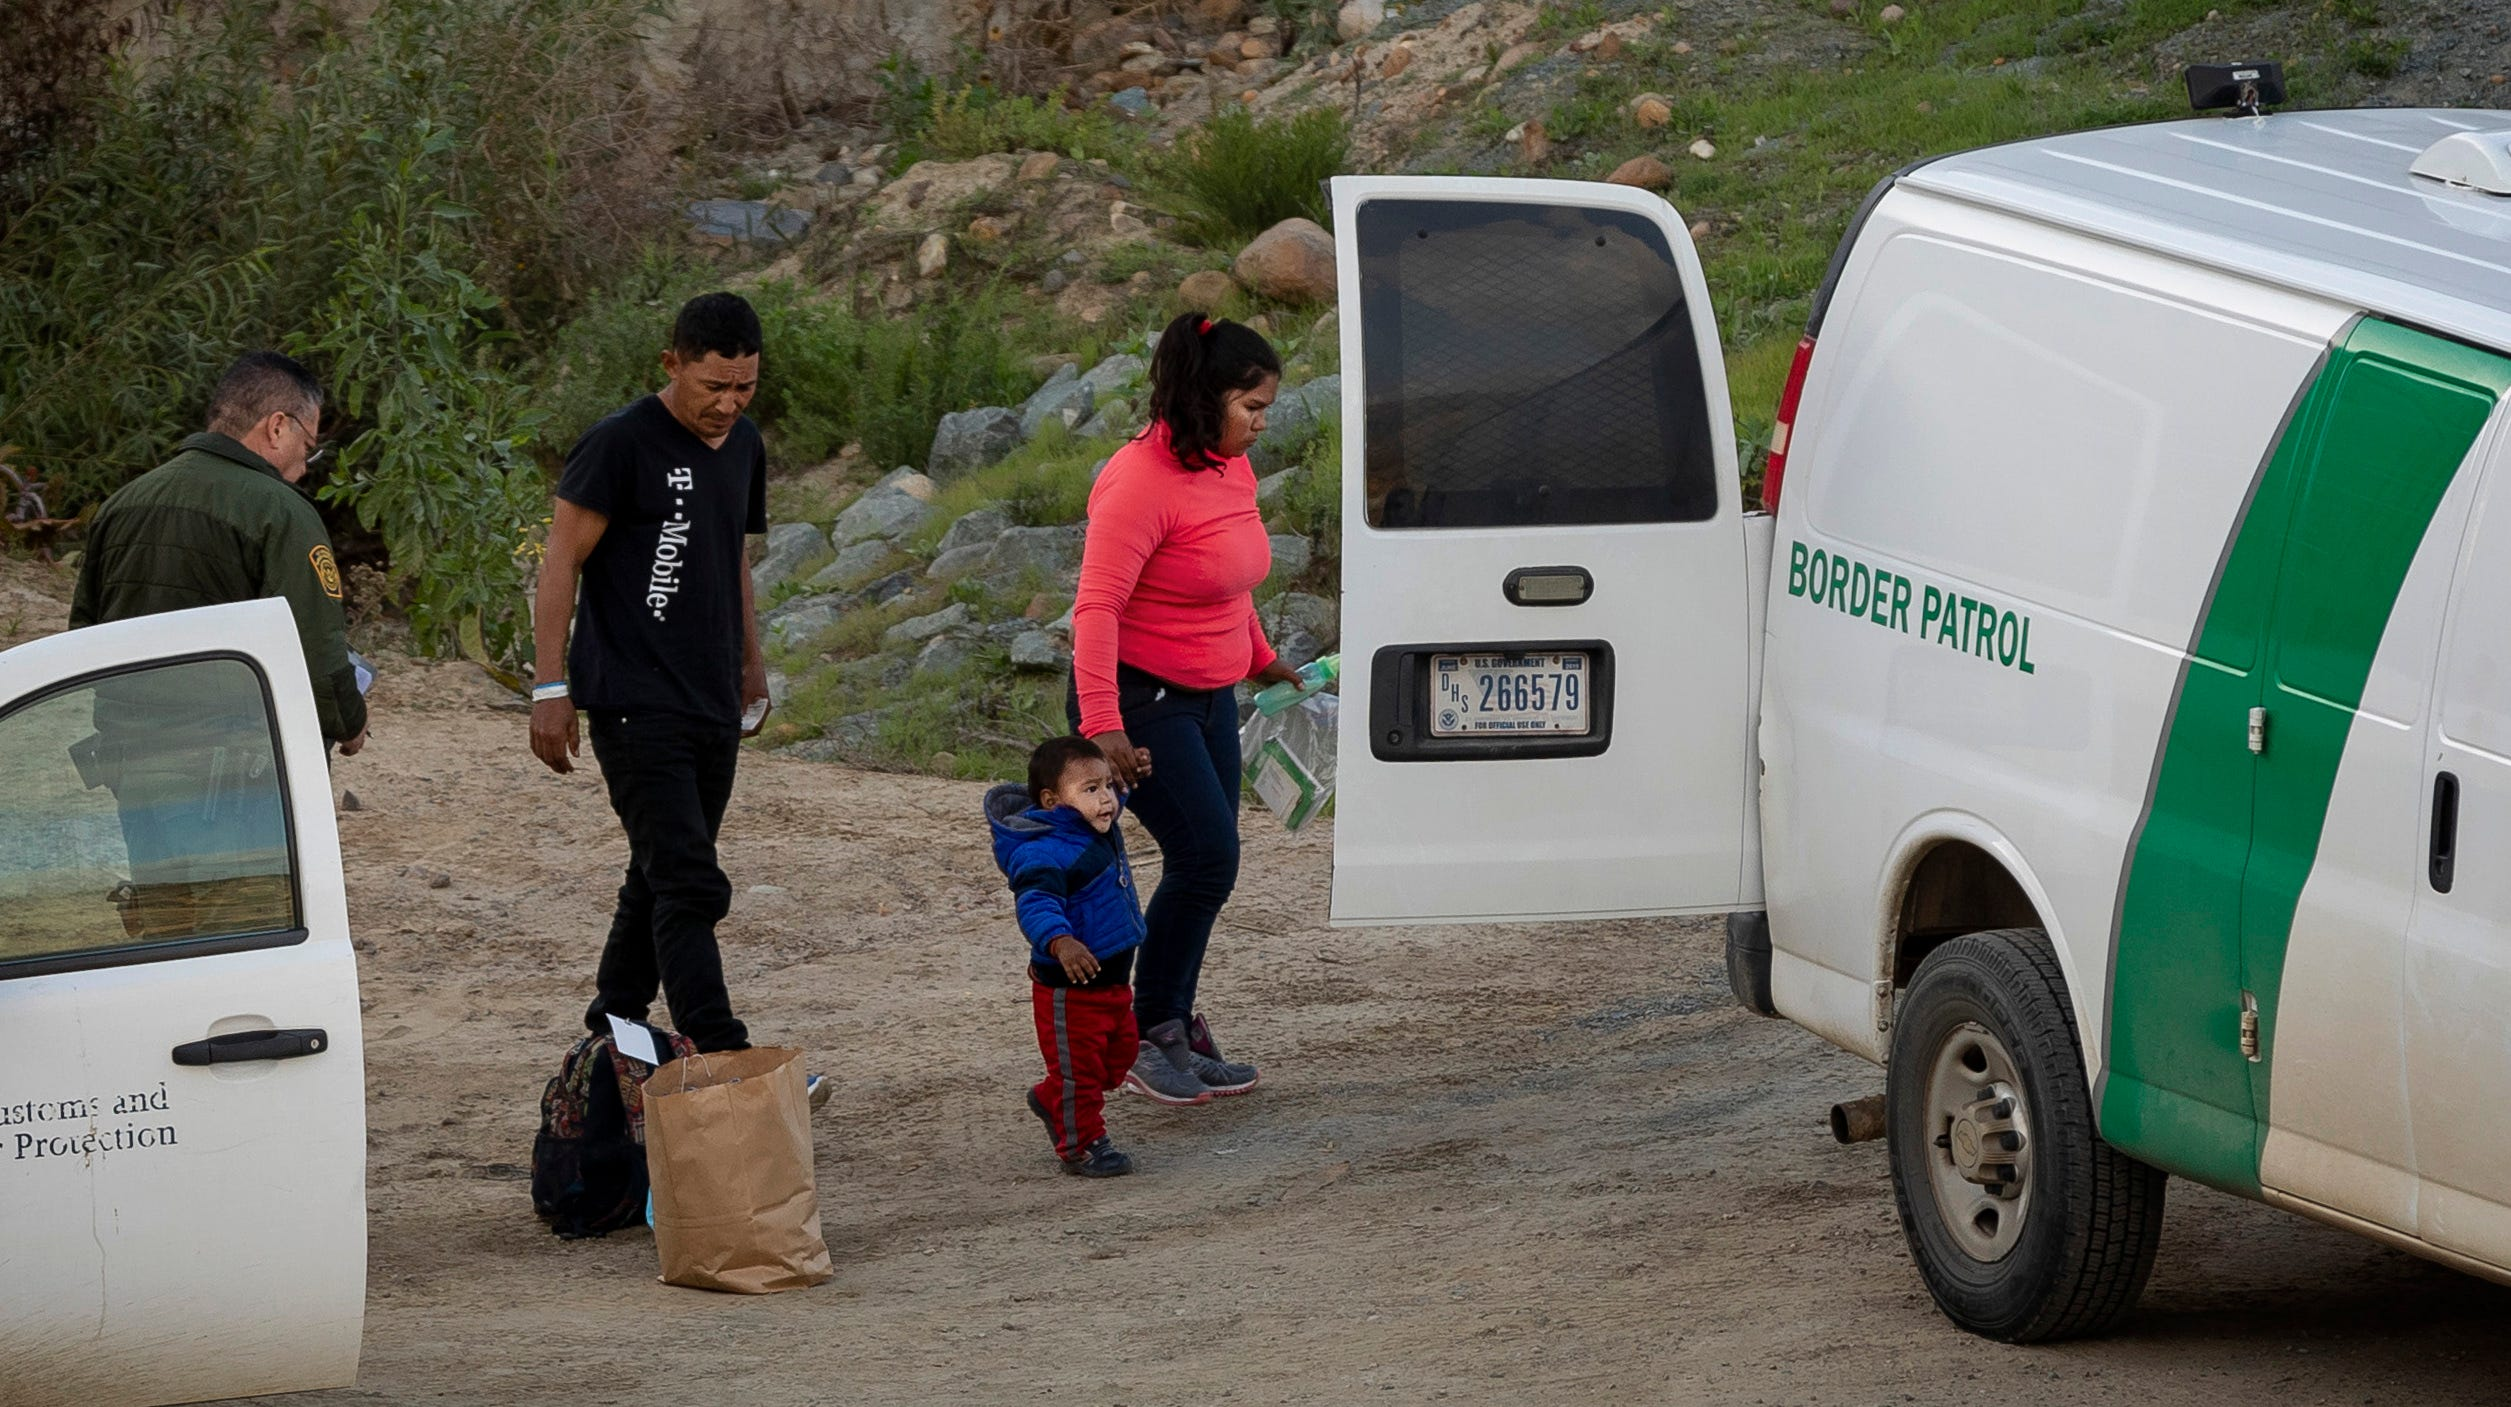 A family of asylum-seekers are taken into custody by U.S. Border Patrol agents after they crossed the U.S. border wall into San Diego, as seen from Tijuana, Mexico, Thursday, Dec. 27, 2018.